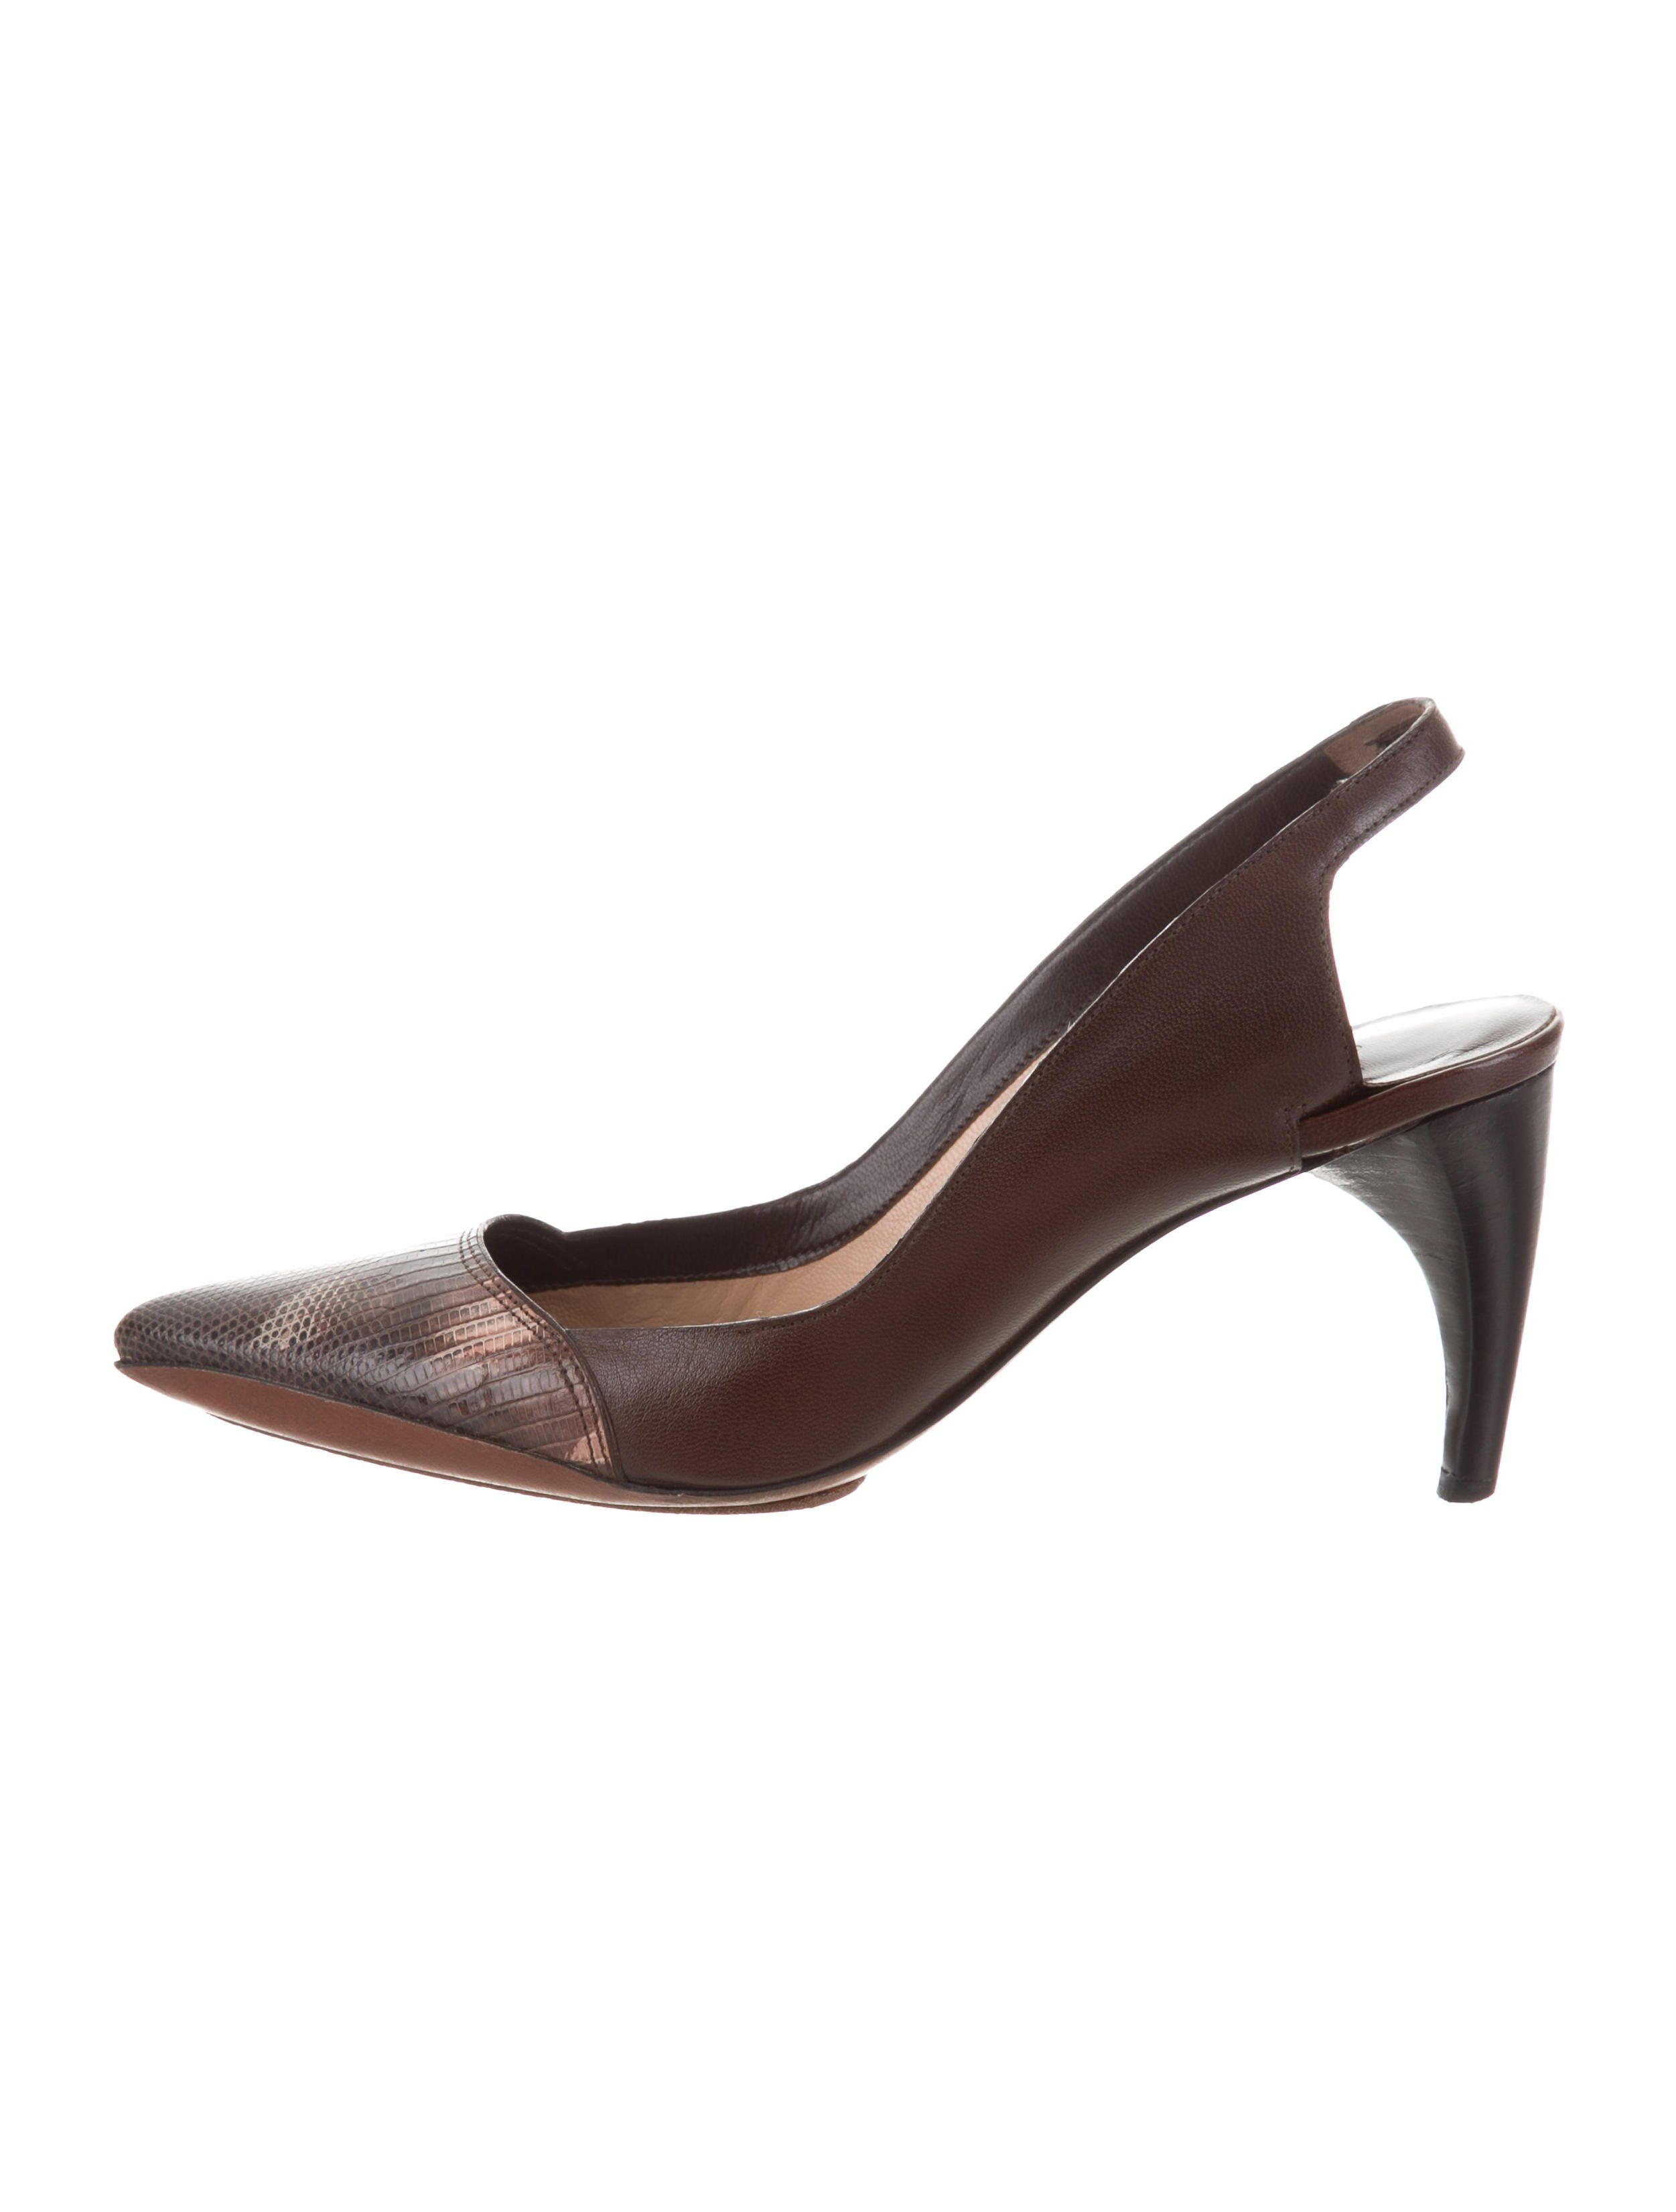 29c978128 Brown leather Costume National pointed-toe slingback pumps with embossed  cap toes and stacked heels. Includes box and dust bag.